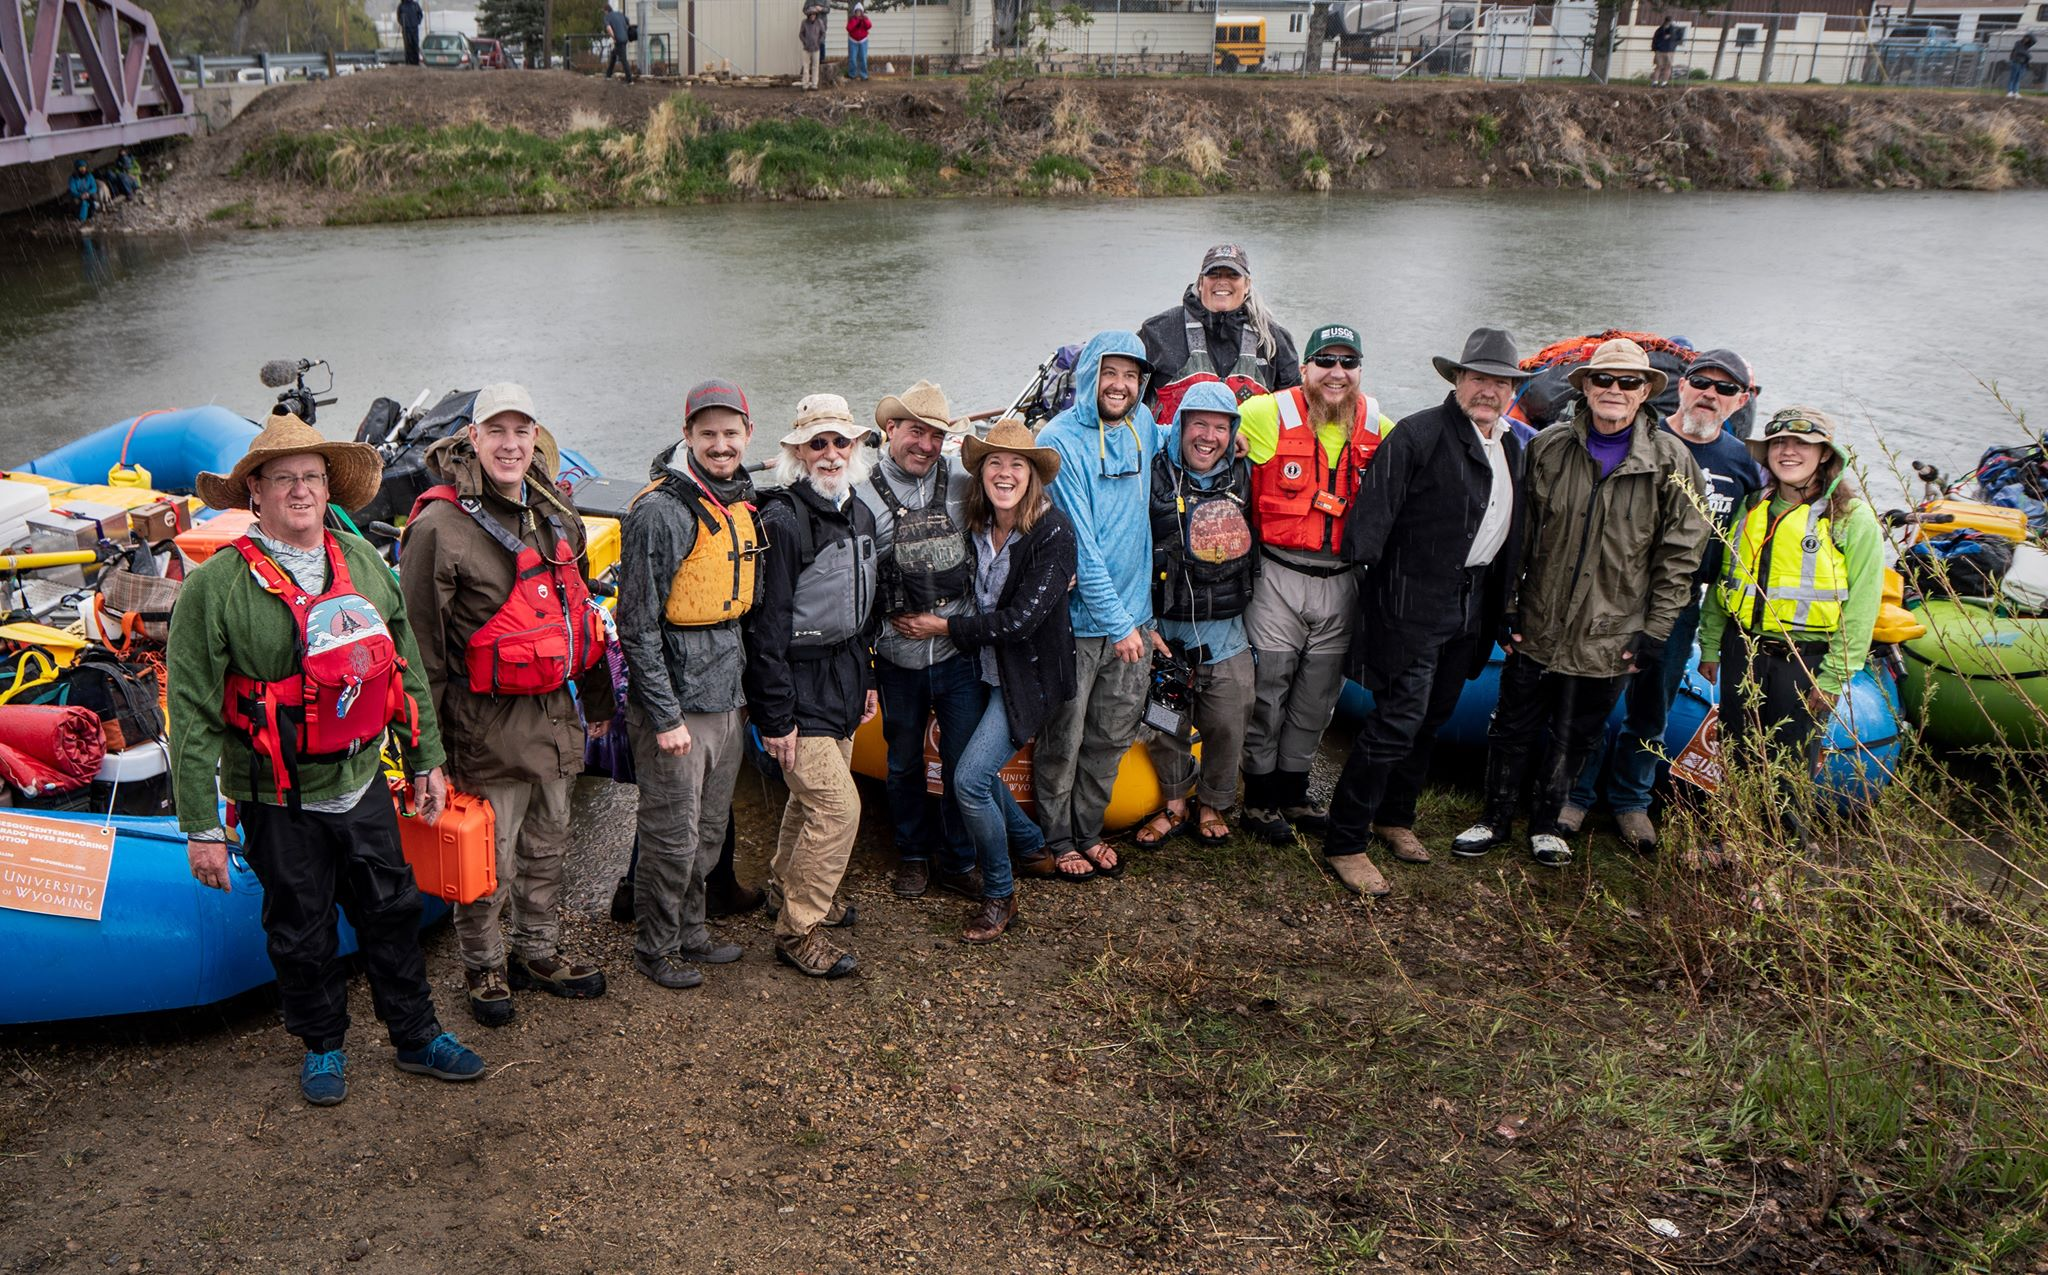 """""""   Thousand-mile river expedition launched in Green River on Friday   """" , May 28, 2019 article in The Rocket Miner. (Photo by Mike Vanata)"""